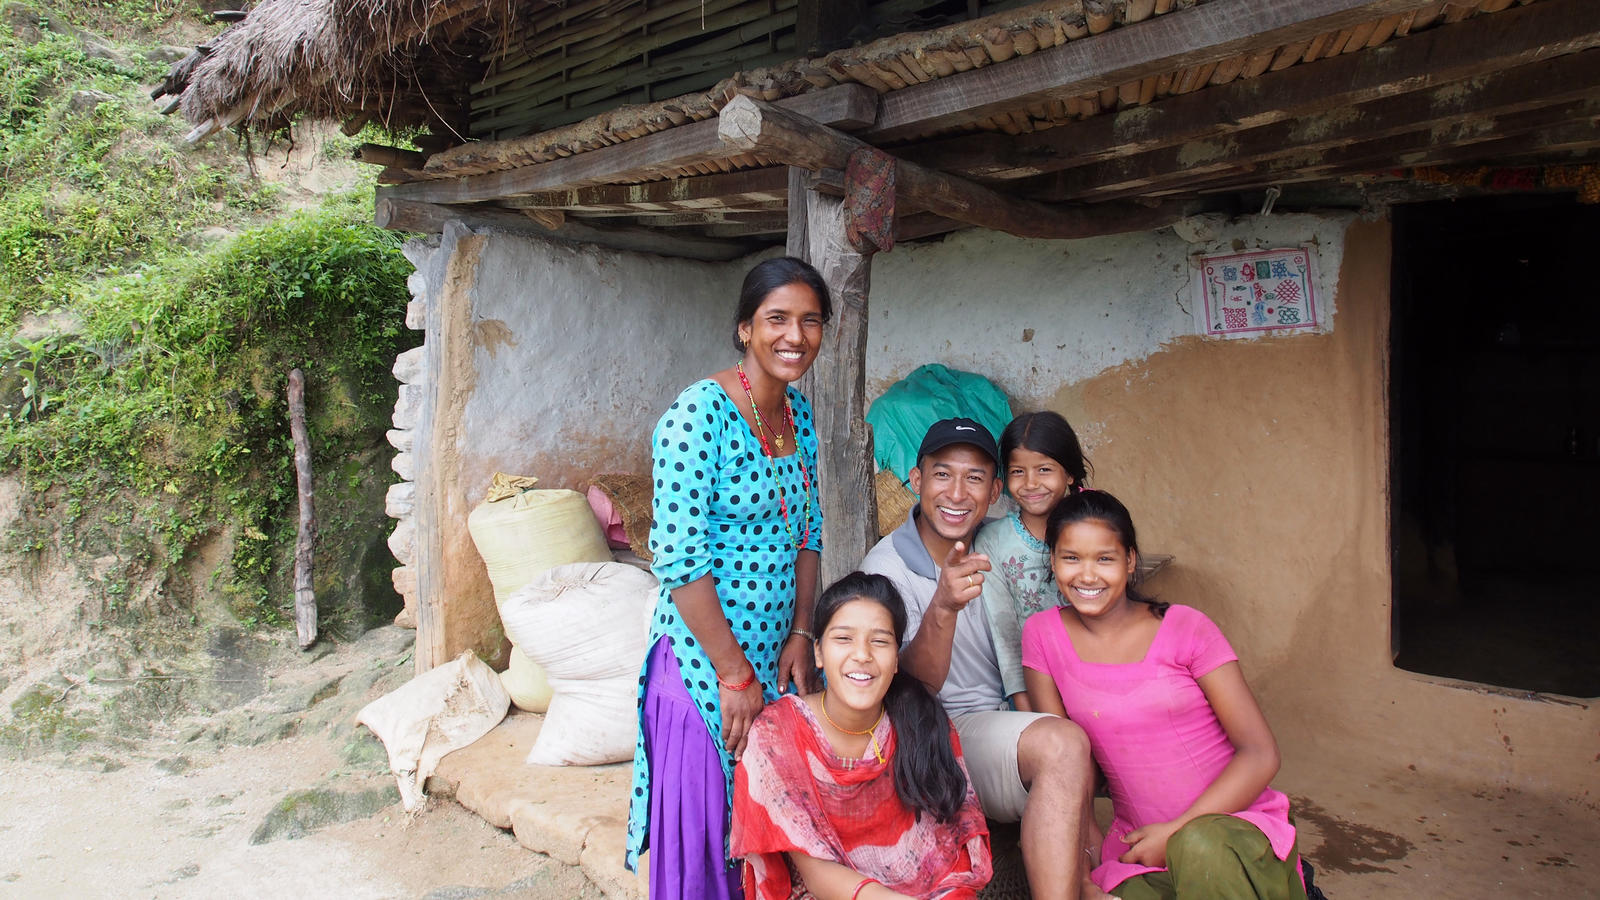 Our Voices from the Field officer Mani, with Balkumari's family in Nepal.